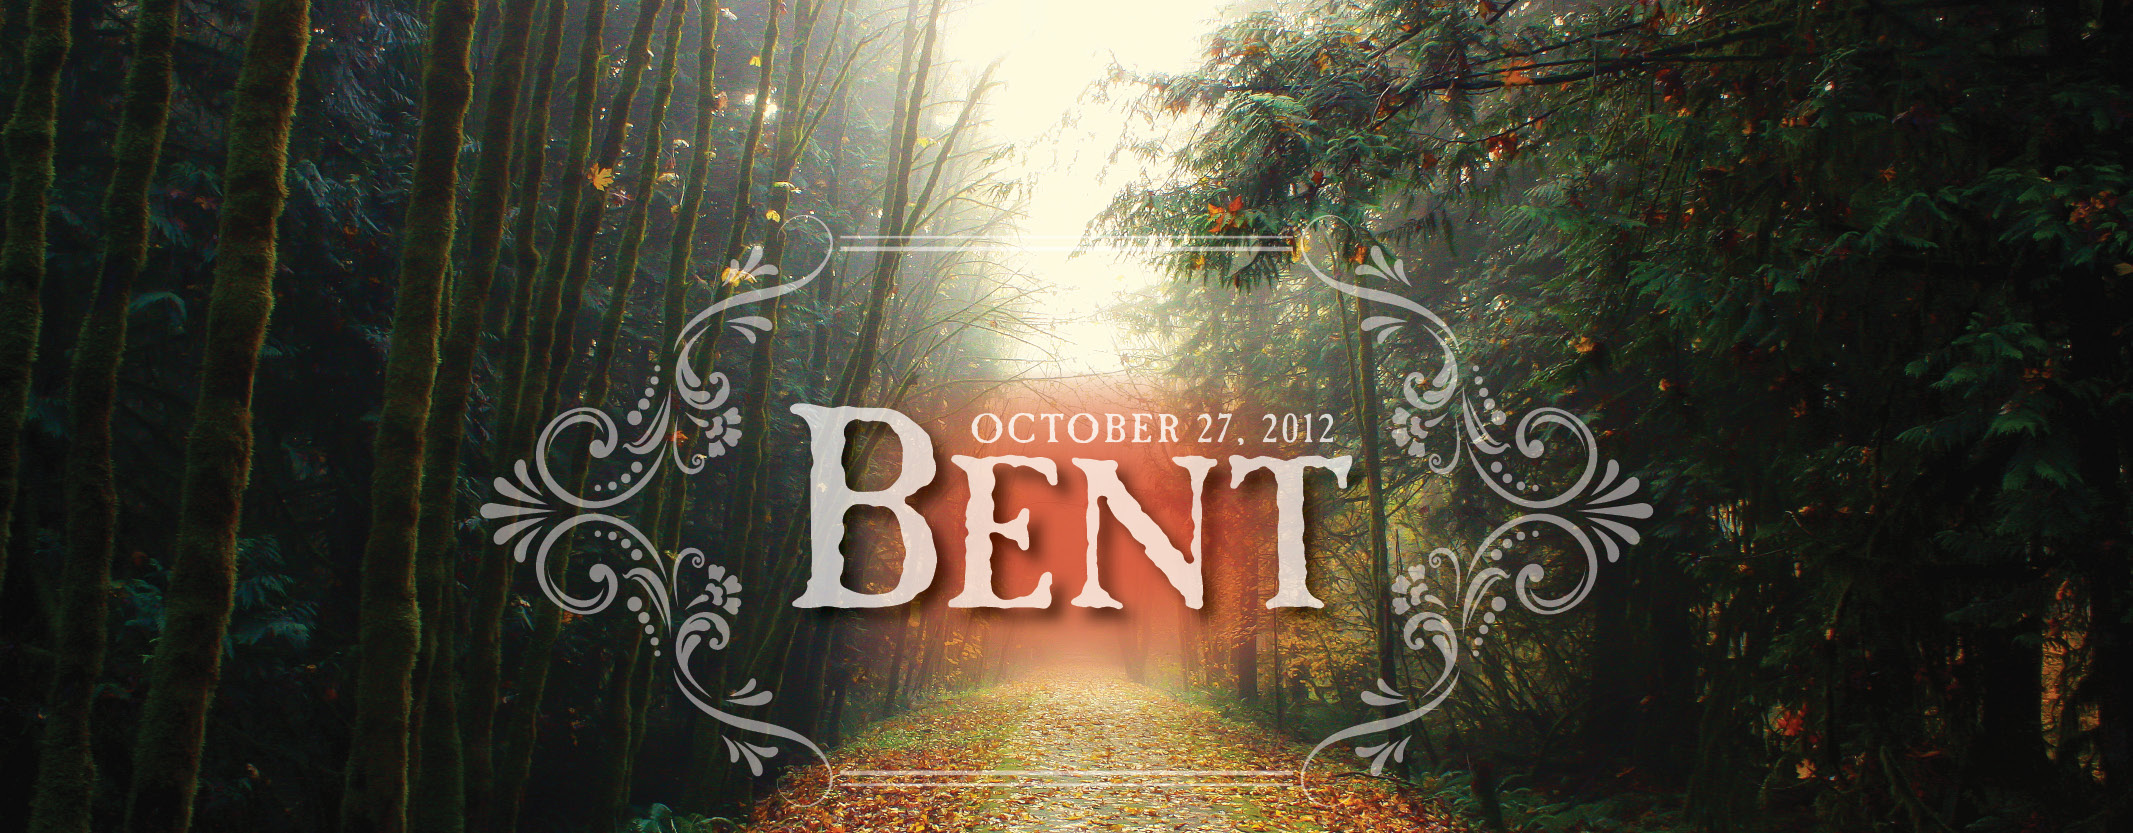 BENT to have Jane Lynch as Honorary Chair: October 27